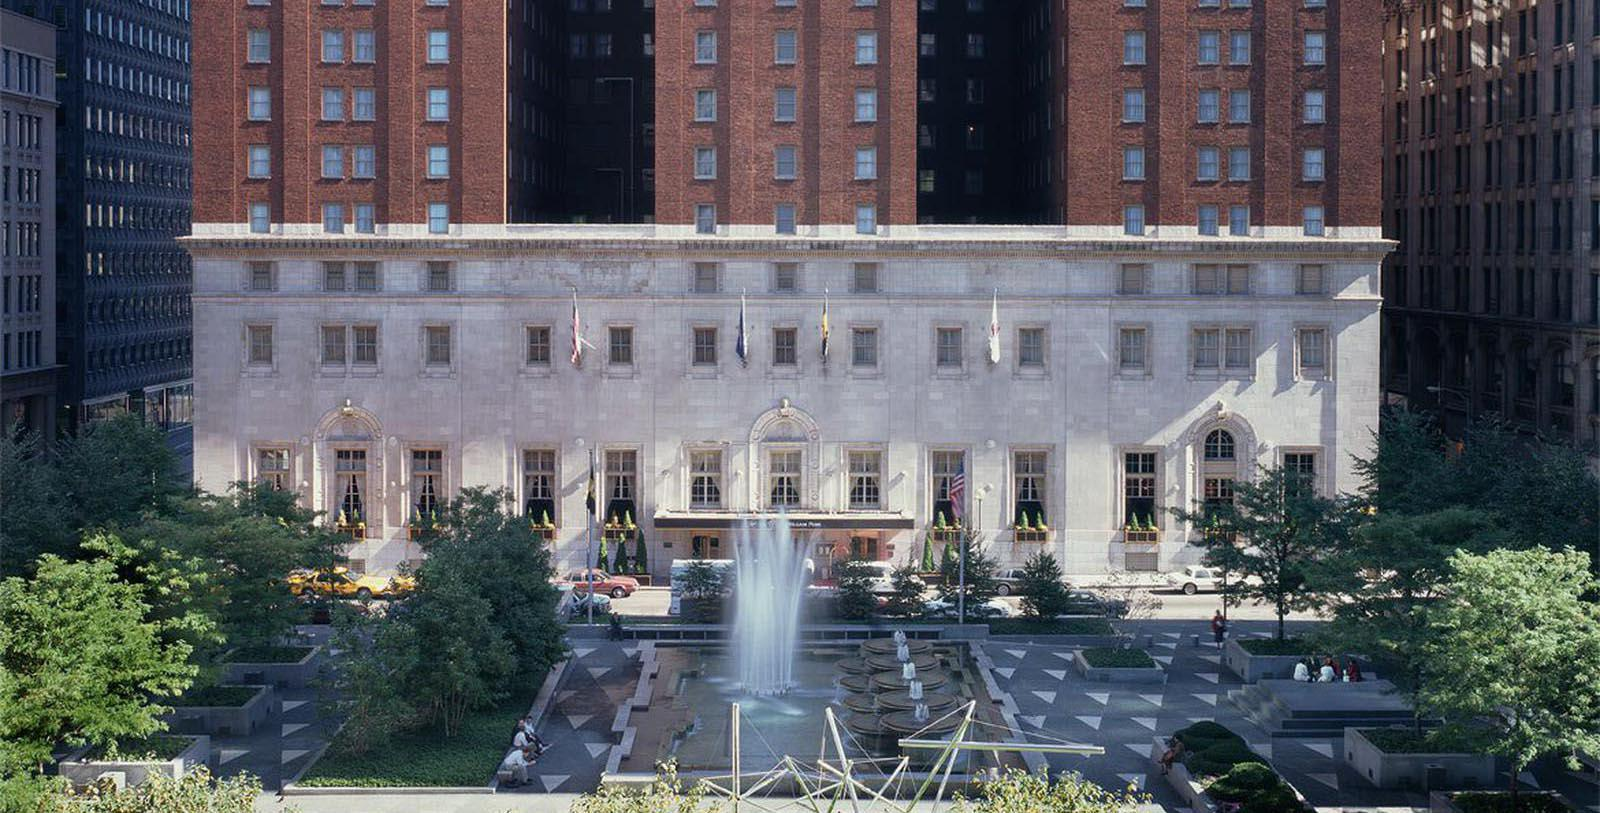 Image of Exterior & Fountain, Omni William Penn Hotel, Pittsburgh, Pennsylvania, 1916, Member of Historic Hotels of America, Special Offers, Discounted Rates, Families, Romantic Escape, Honeymoons, Anniversaries, Reunions